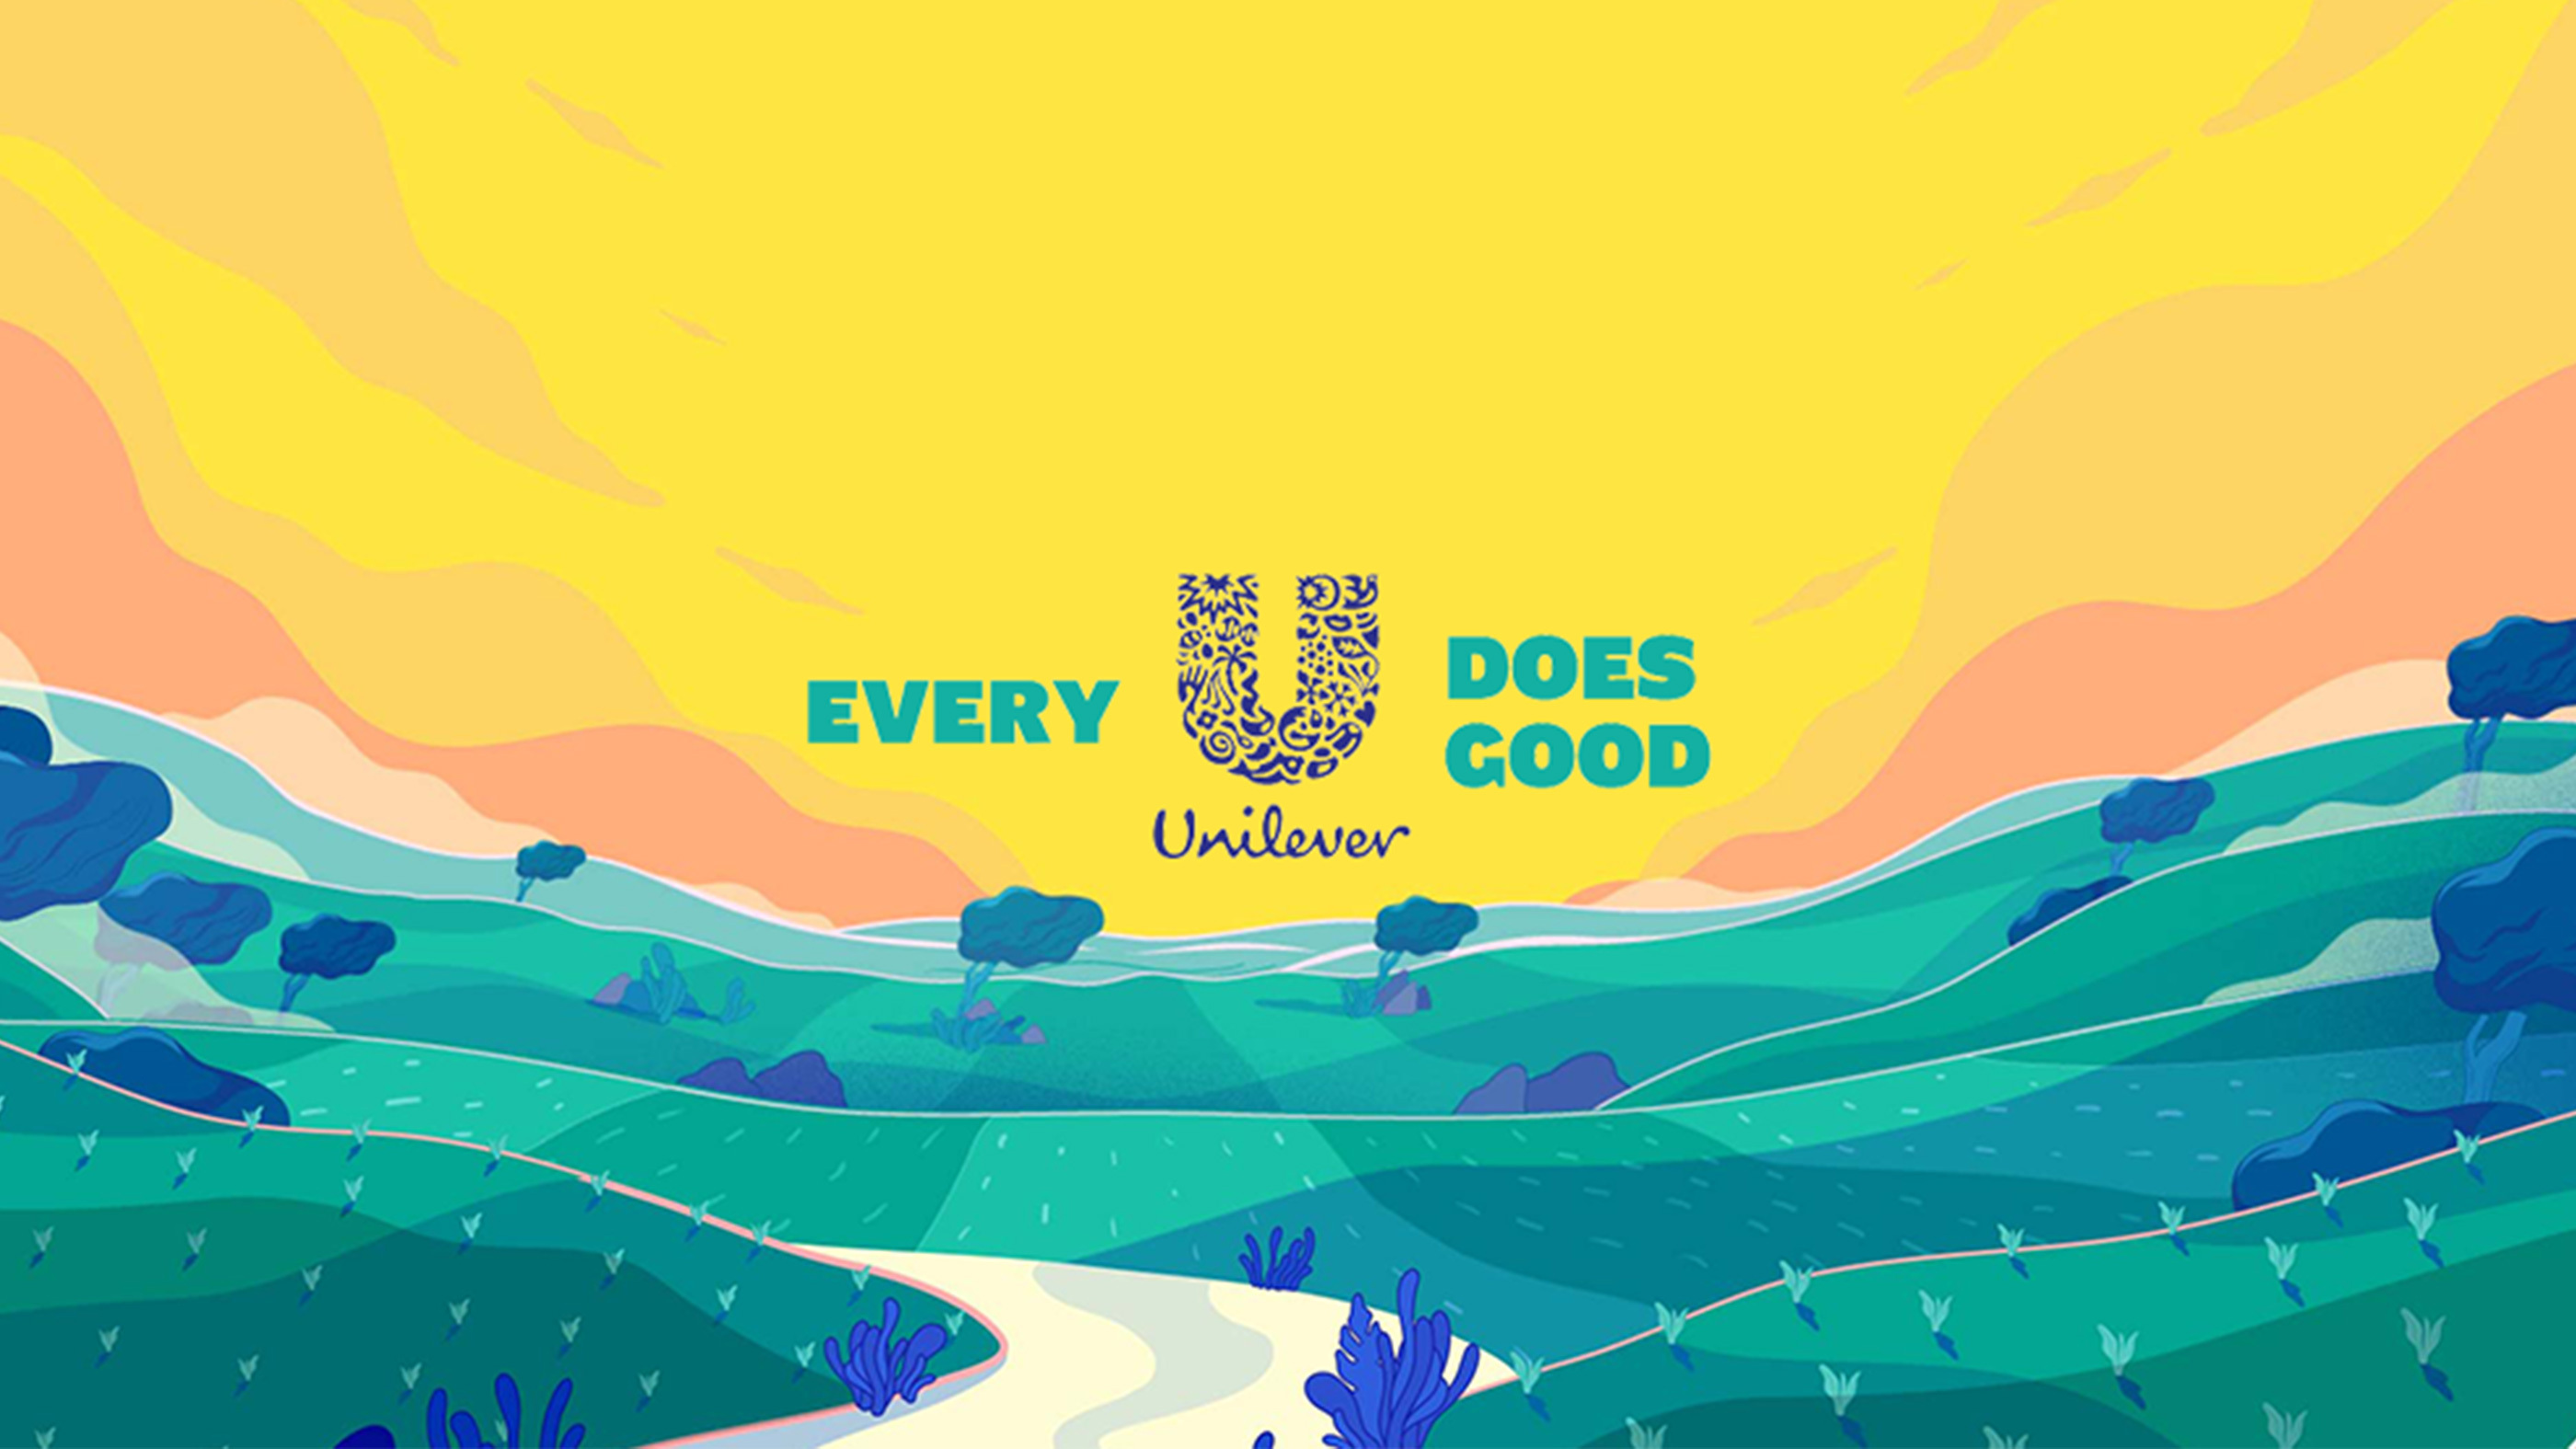 Unilever every u does good logo above animated green hills and skyline